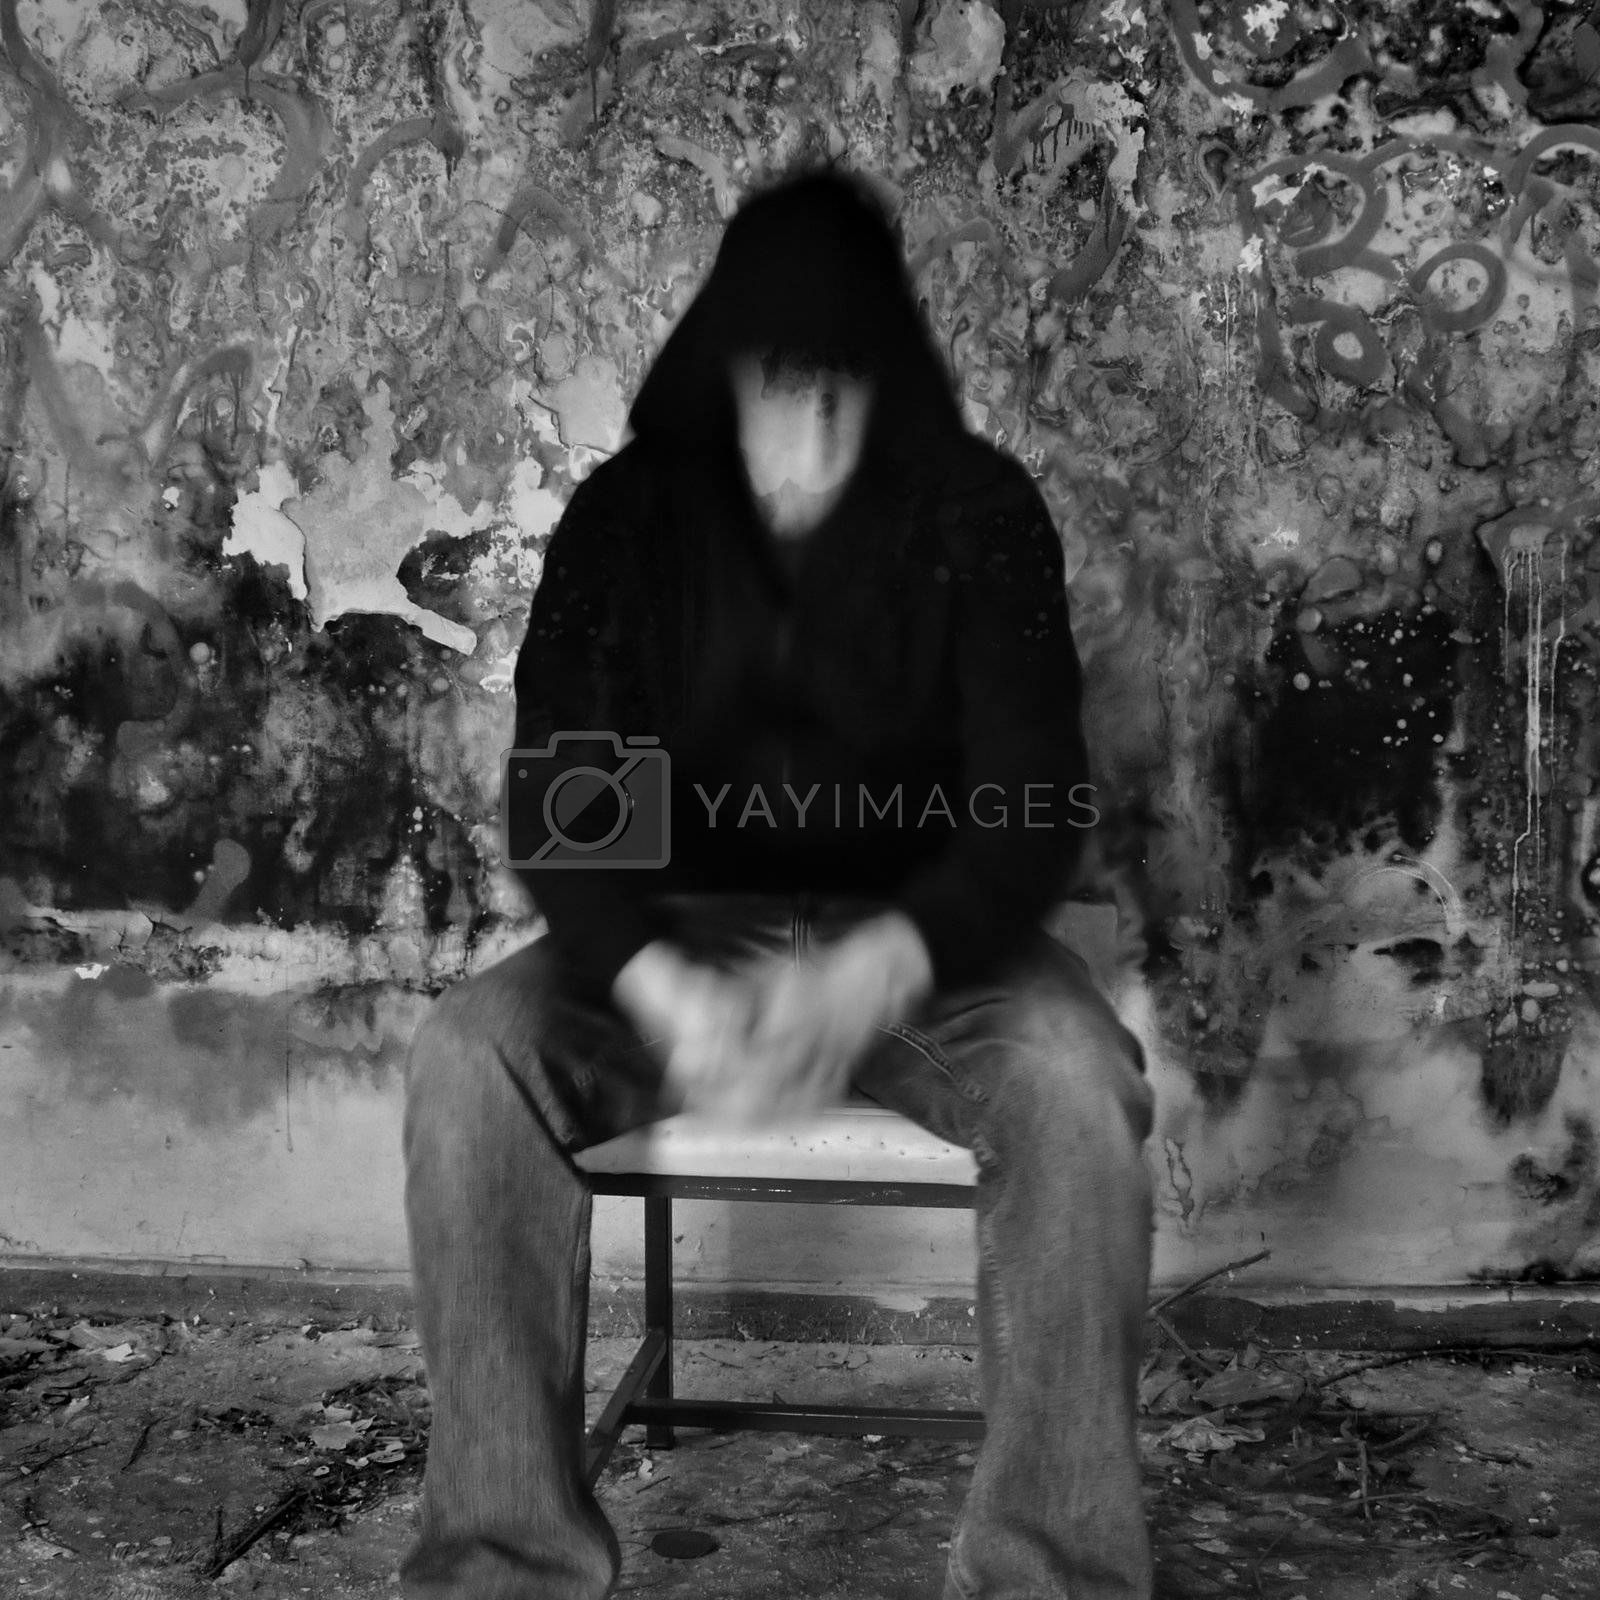 Man dissolving into textured black mold and peeling paint wall.